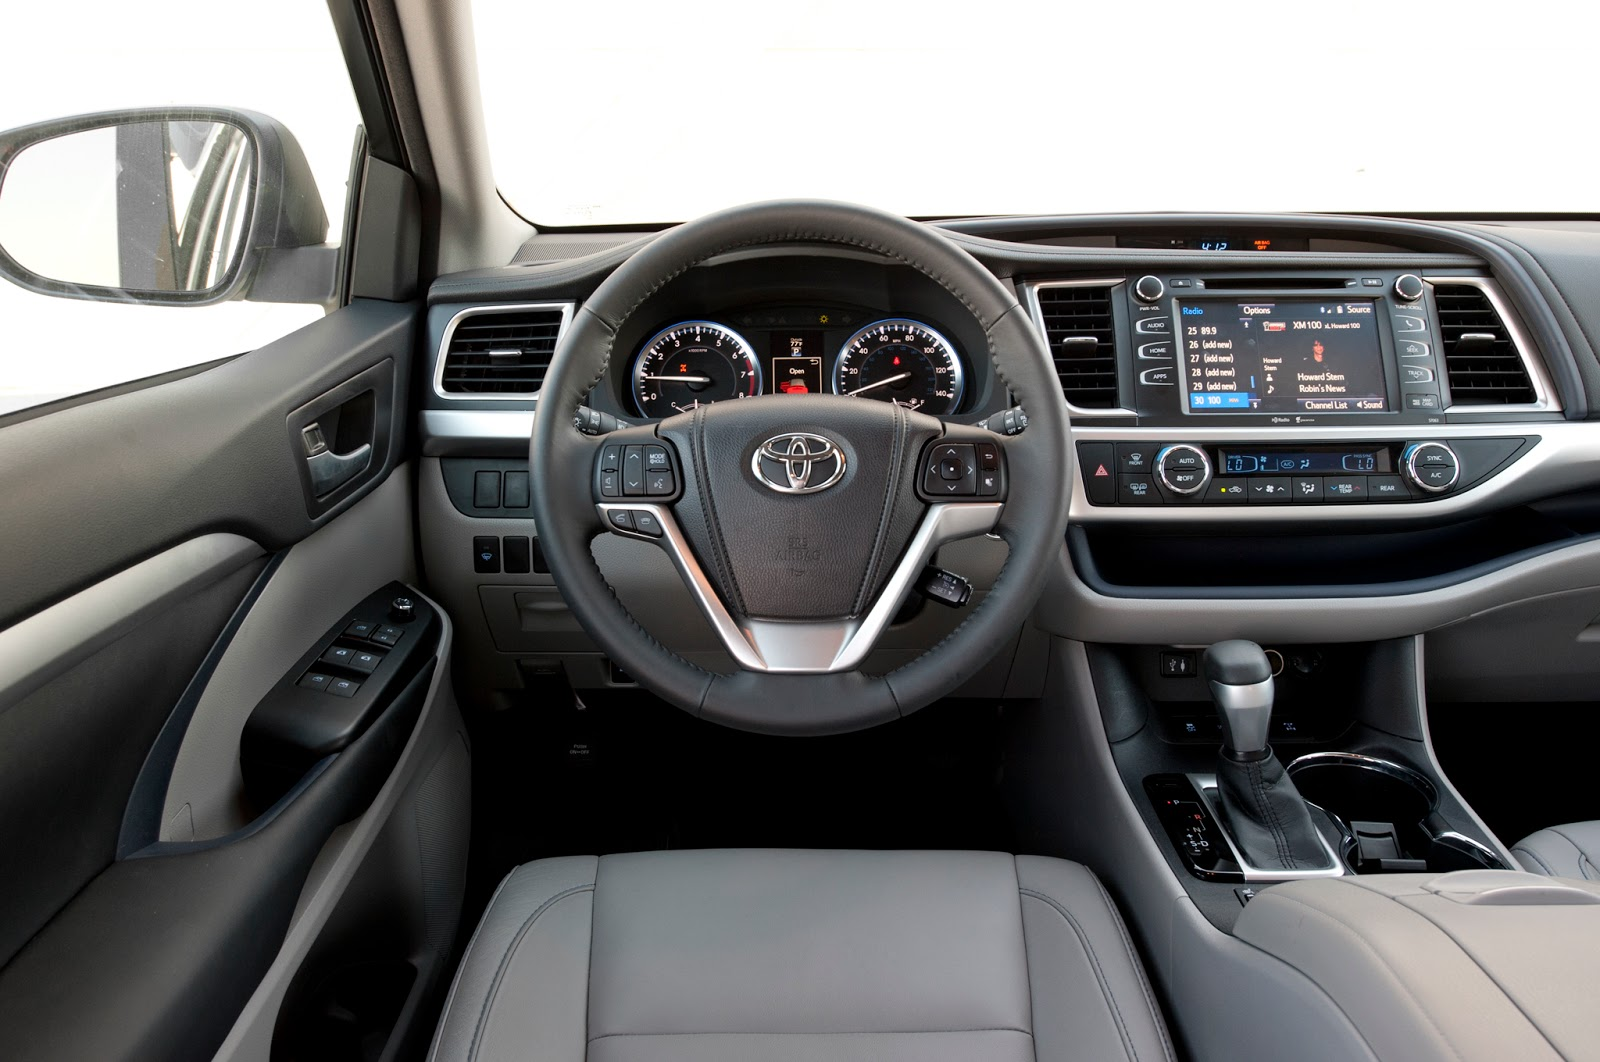 New 2015 toyota highlander full details and price